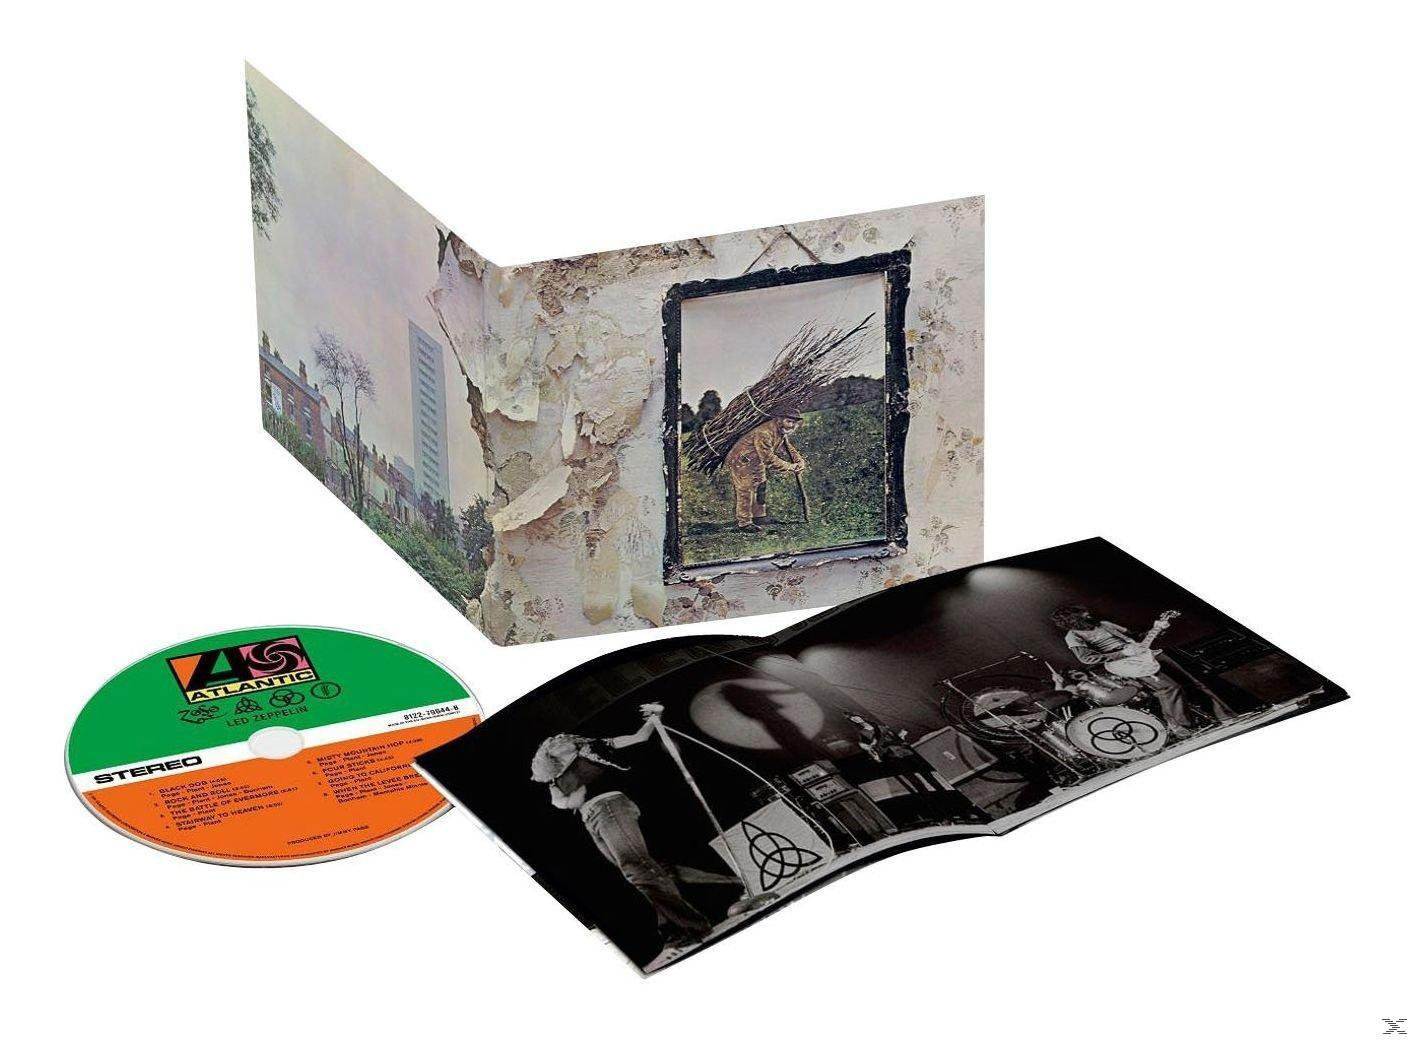 LED ZEPPELIN IV (CD REM)